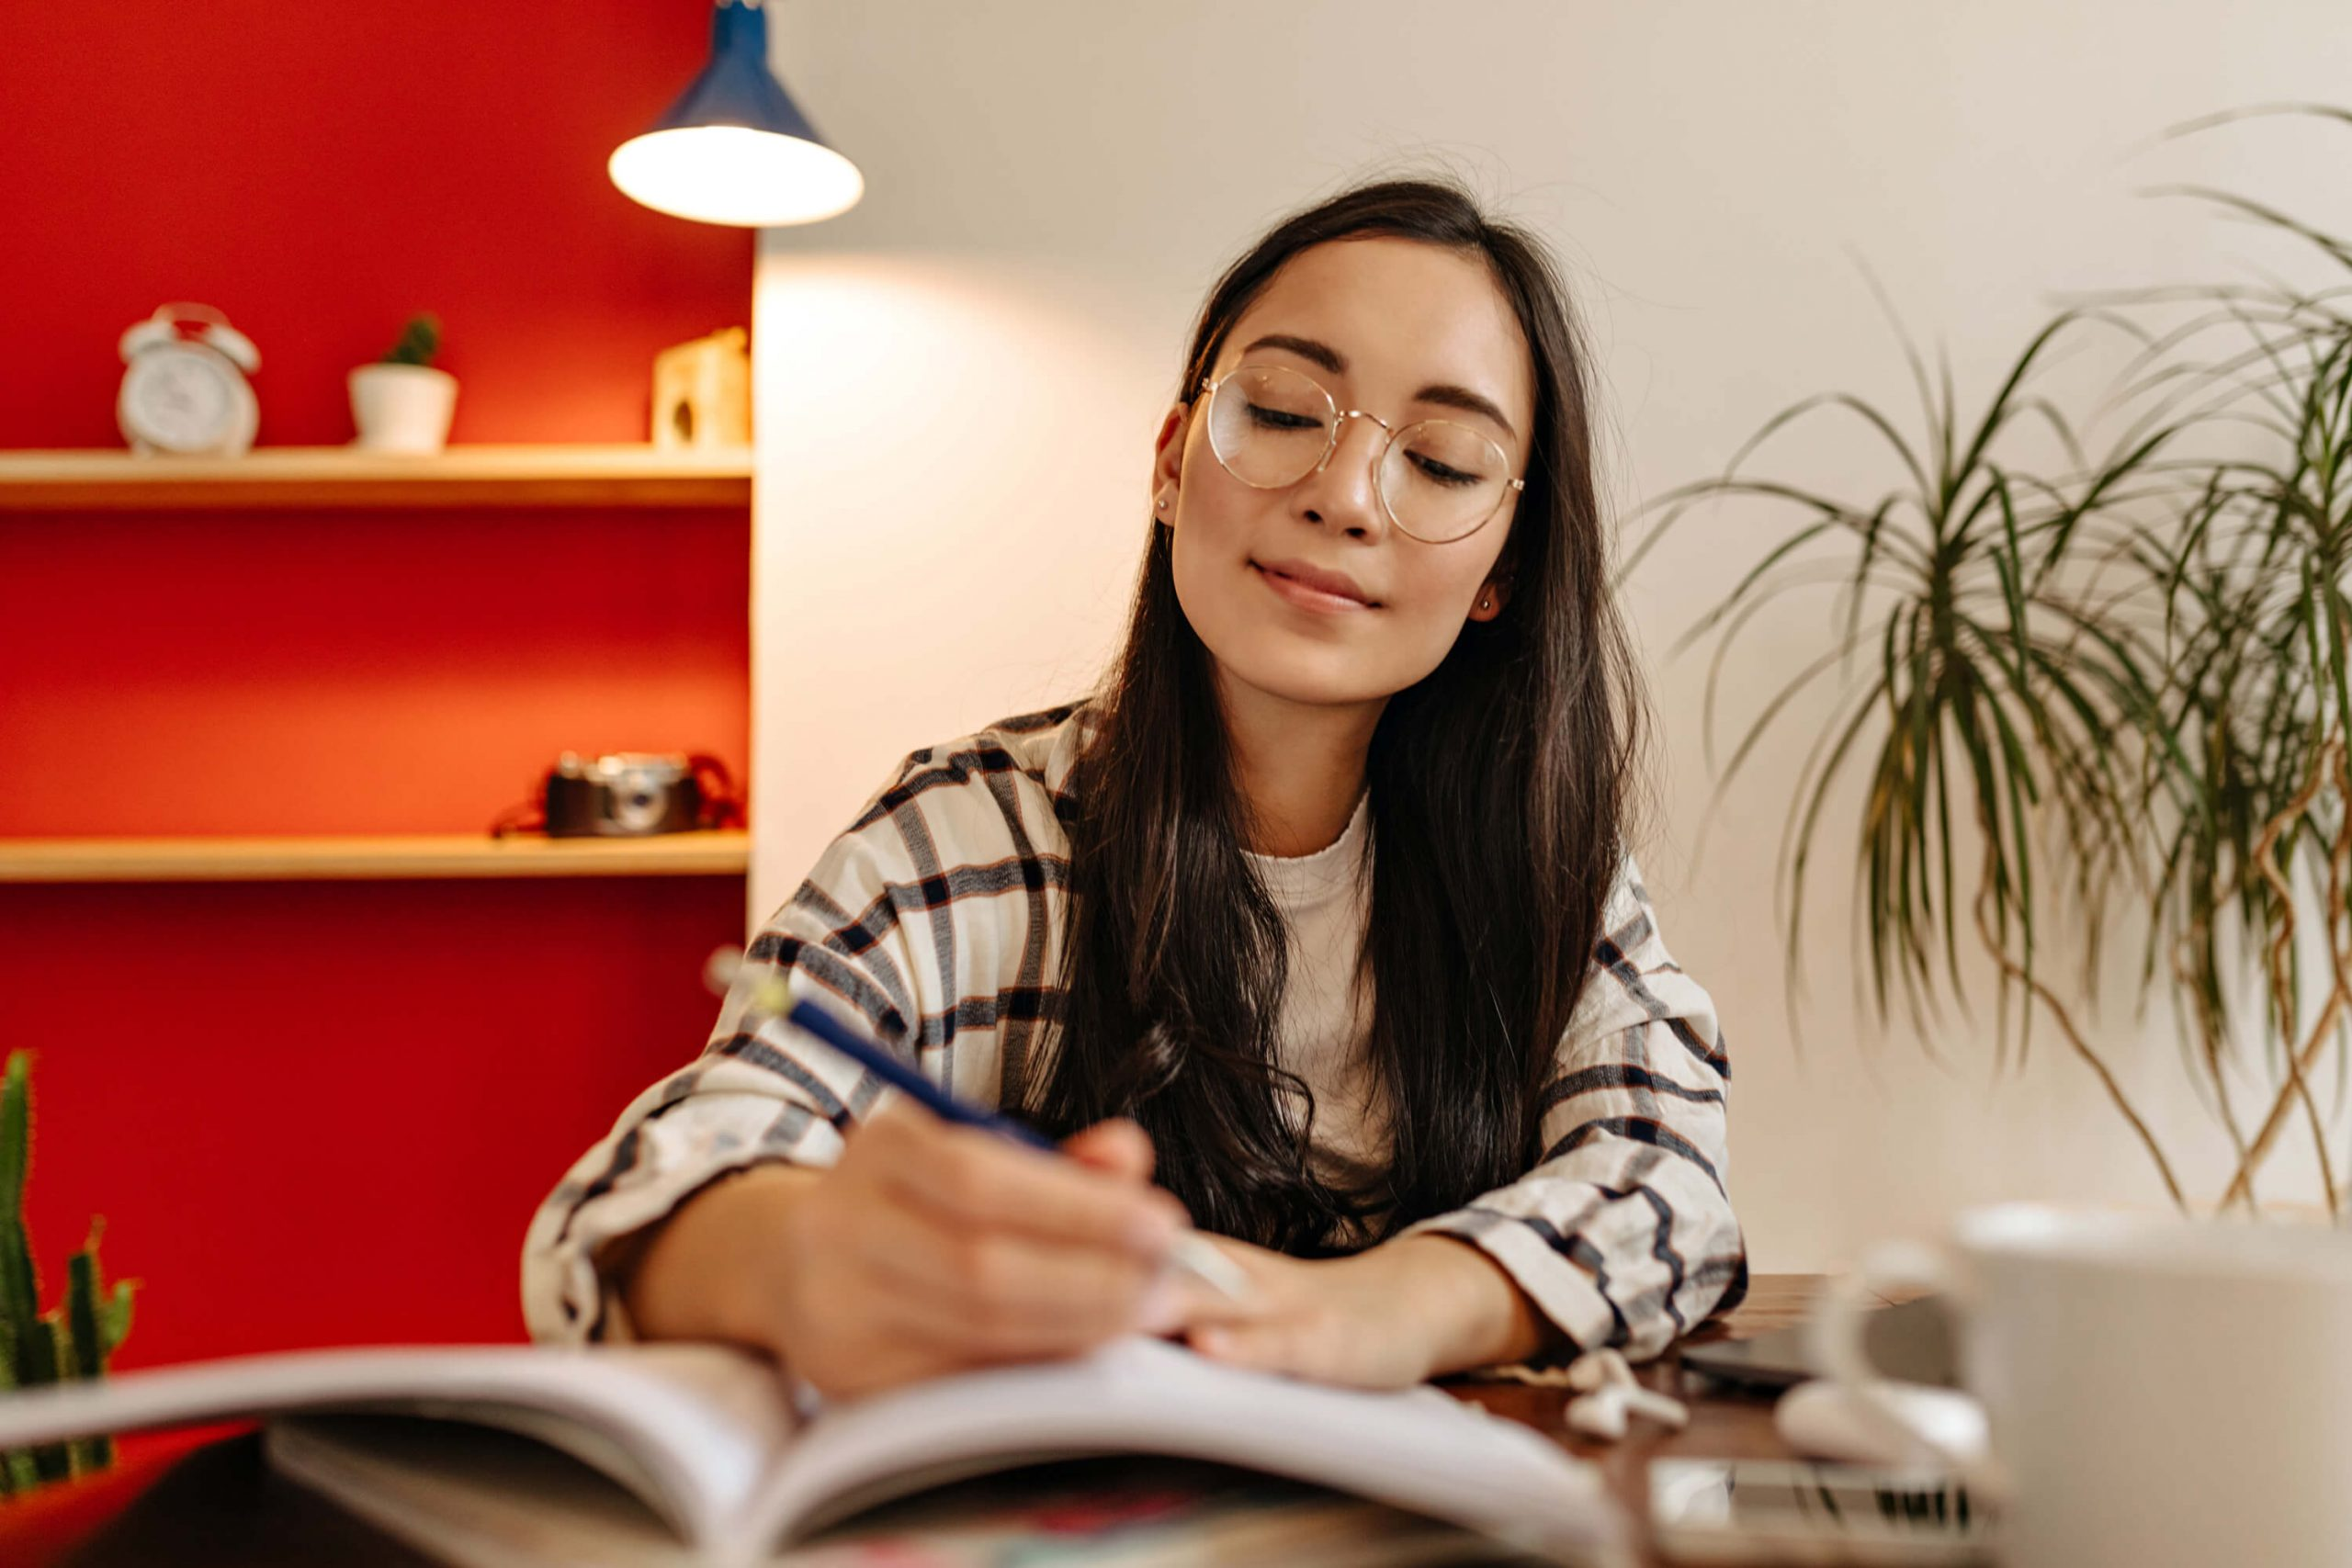 joyful woman in plaid shirt takes notes in journal